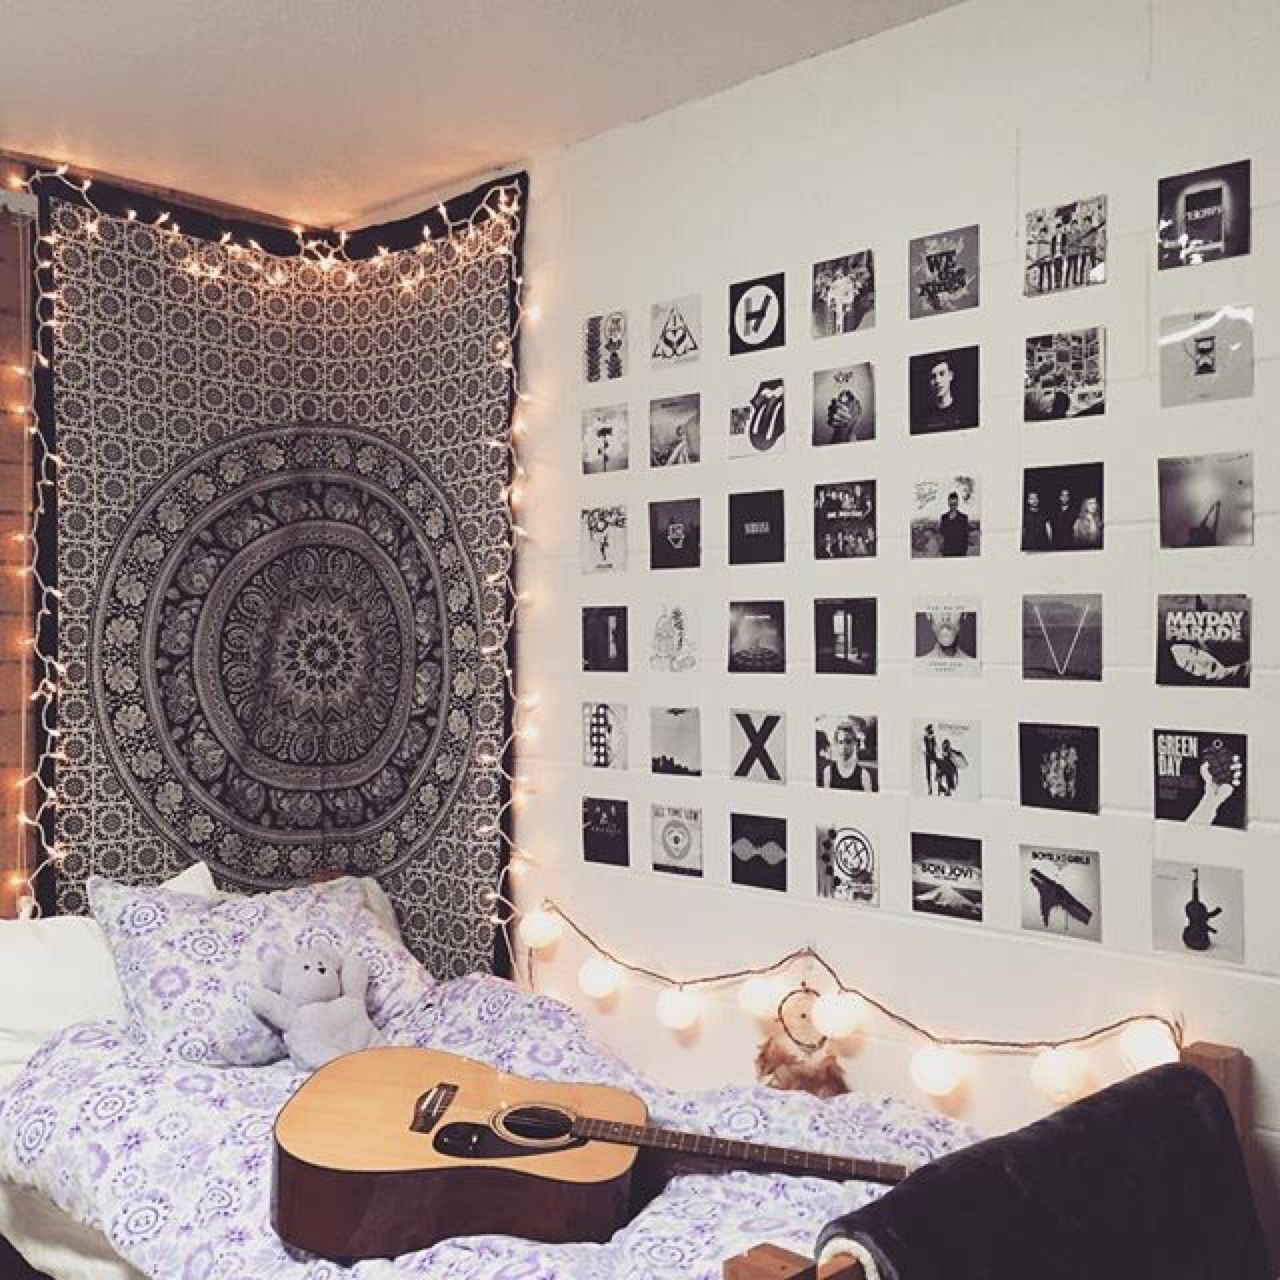 Source Myroomspo Tapestry Bedroom Tumblr Decoration Room Decor Diy Inspiration Poster Lights Fairy Collage Bands Al Wall Art